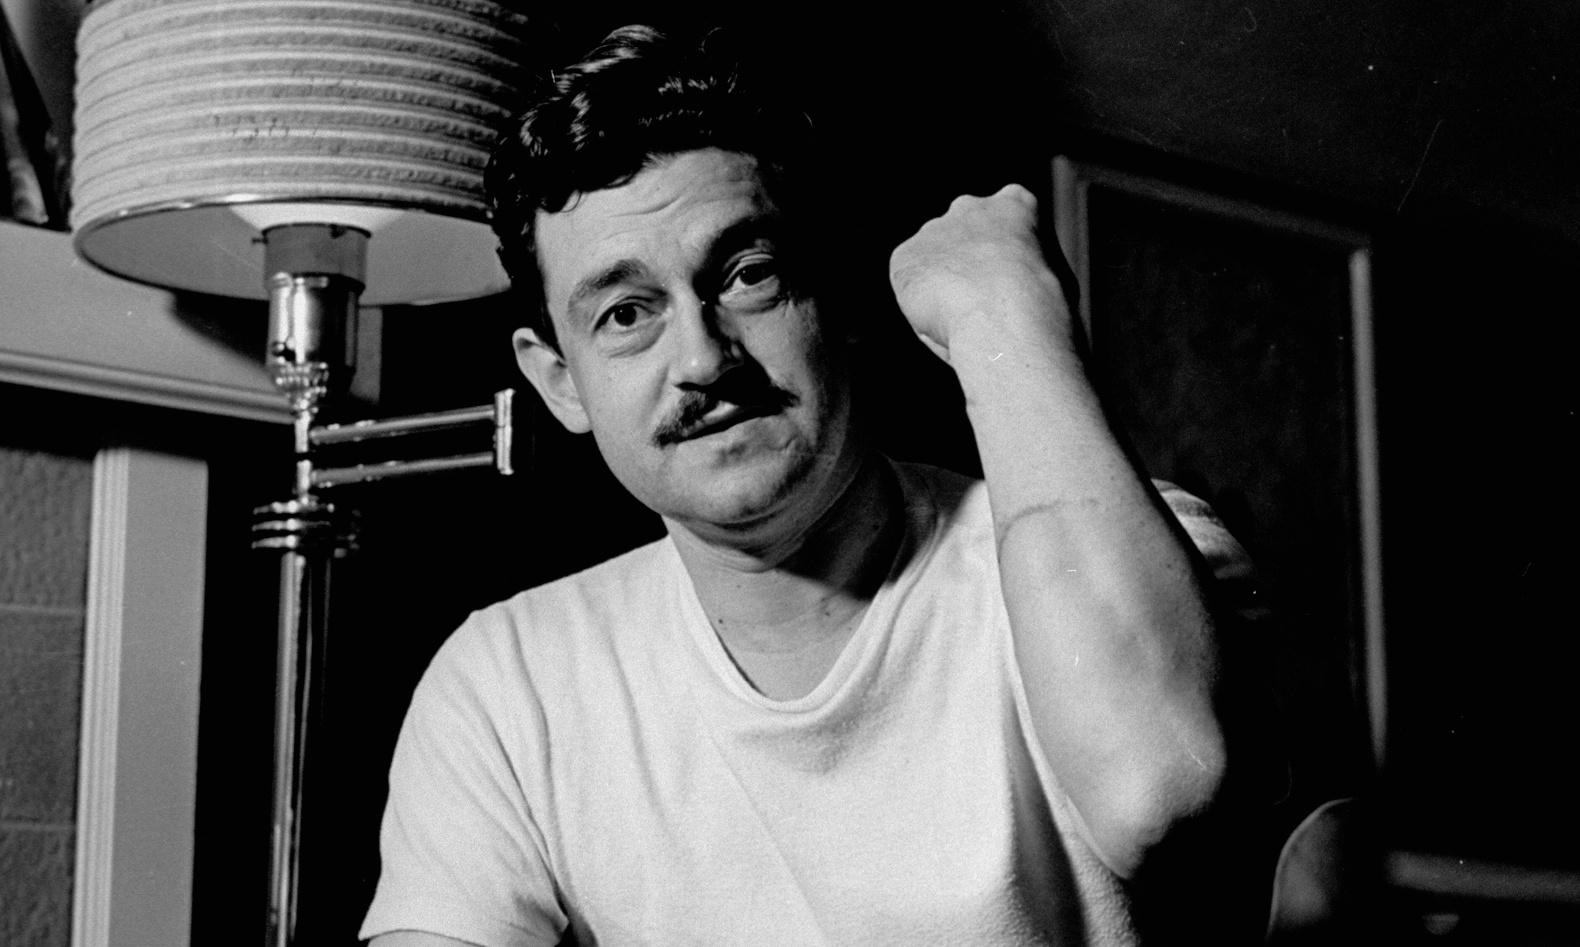 'Truth is funnier than anything': the life of Preston Sturges told by his son